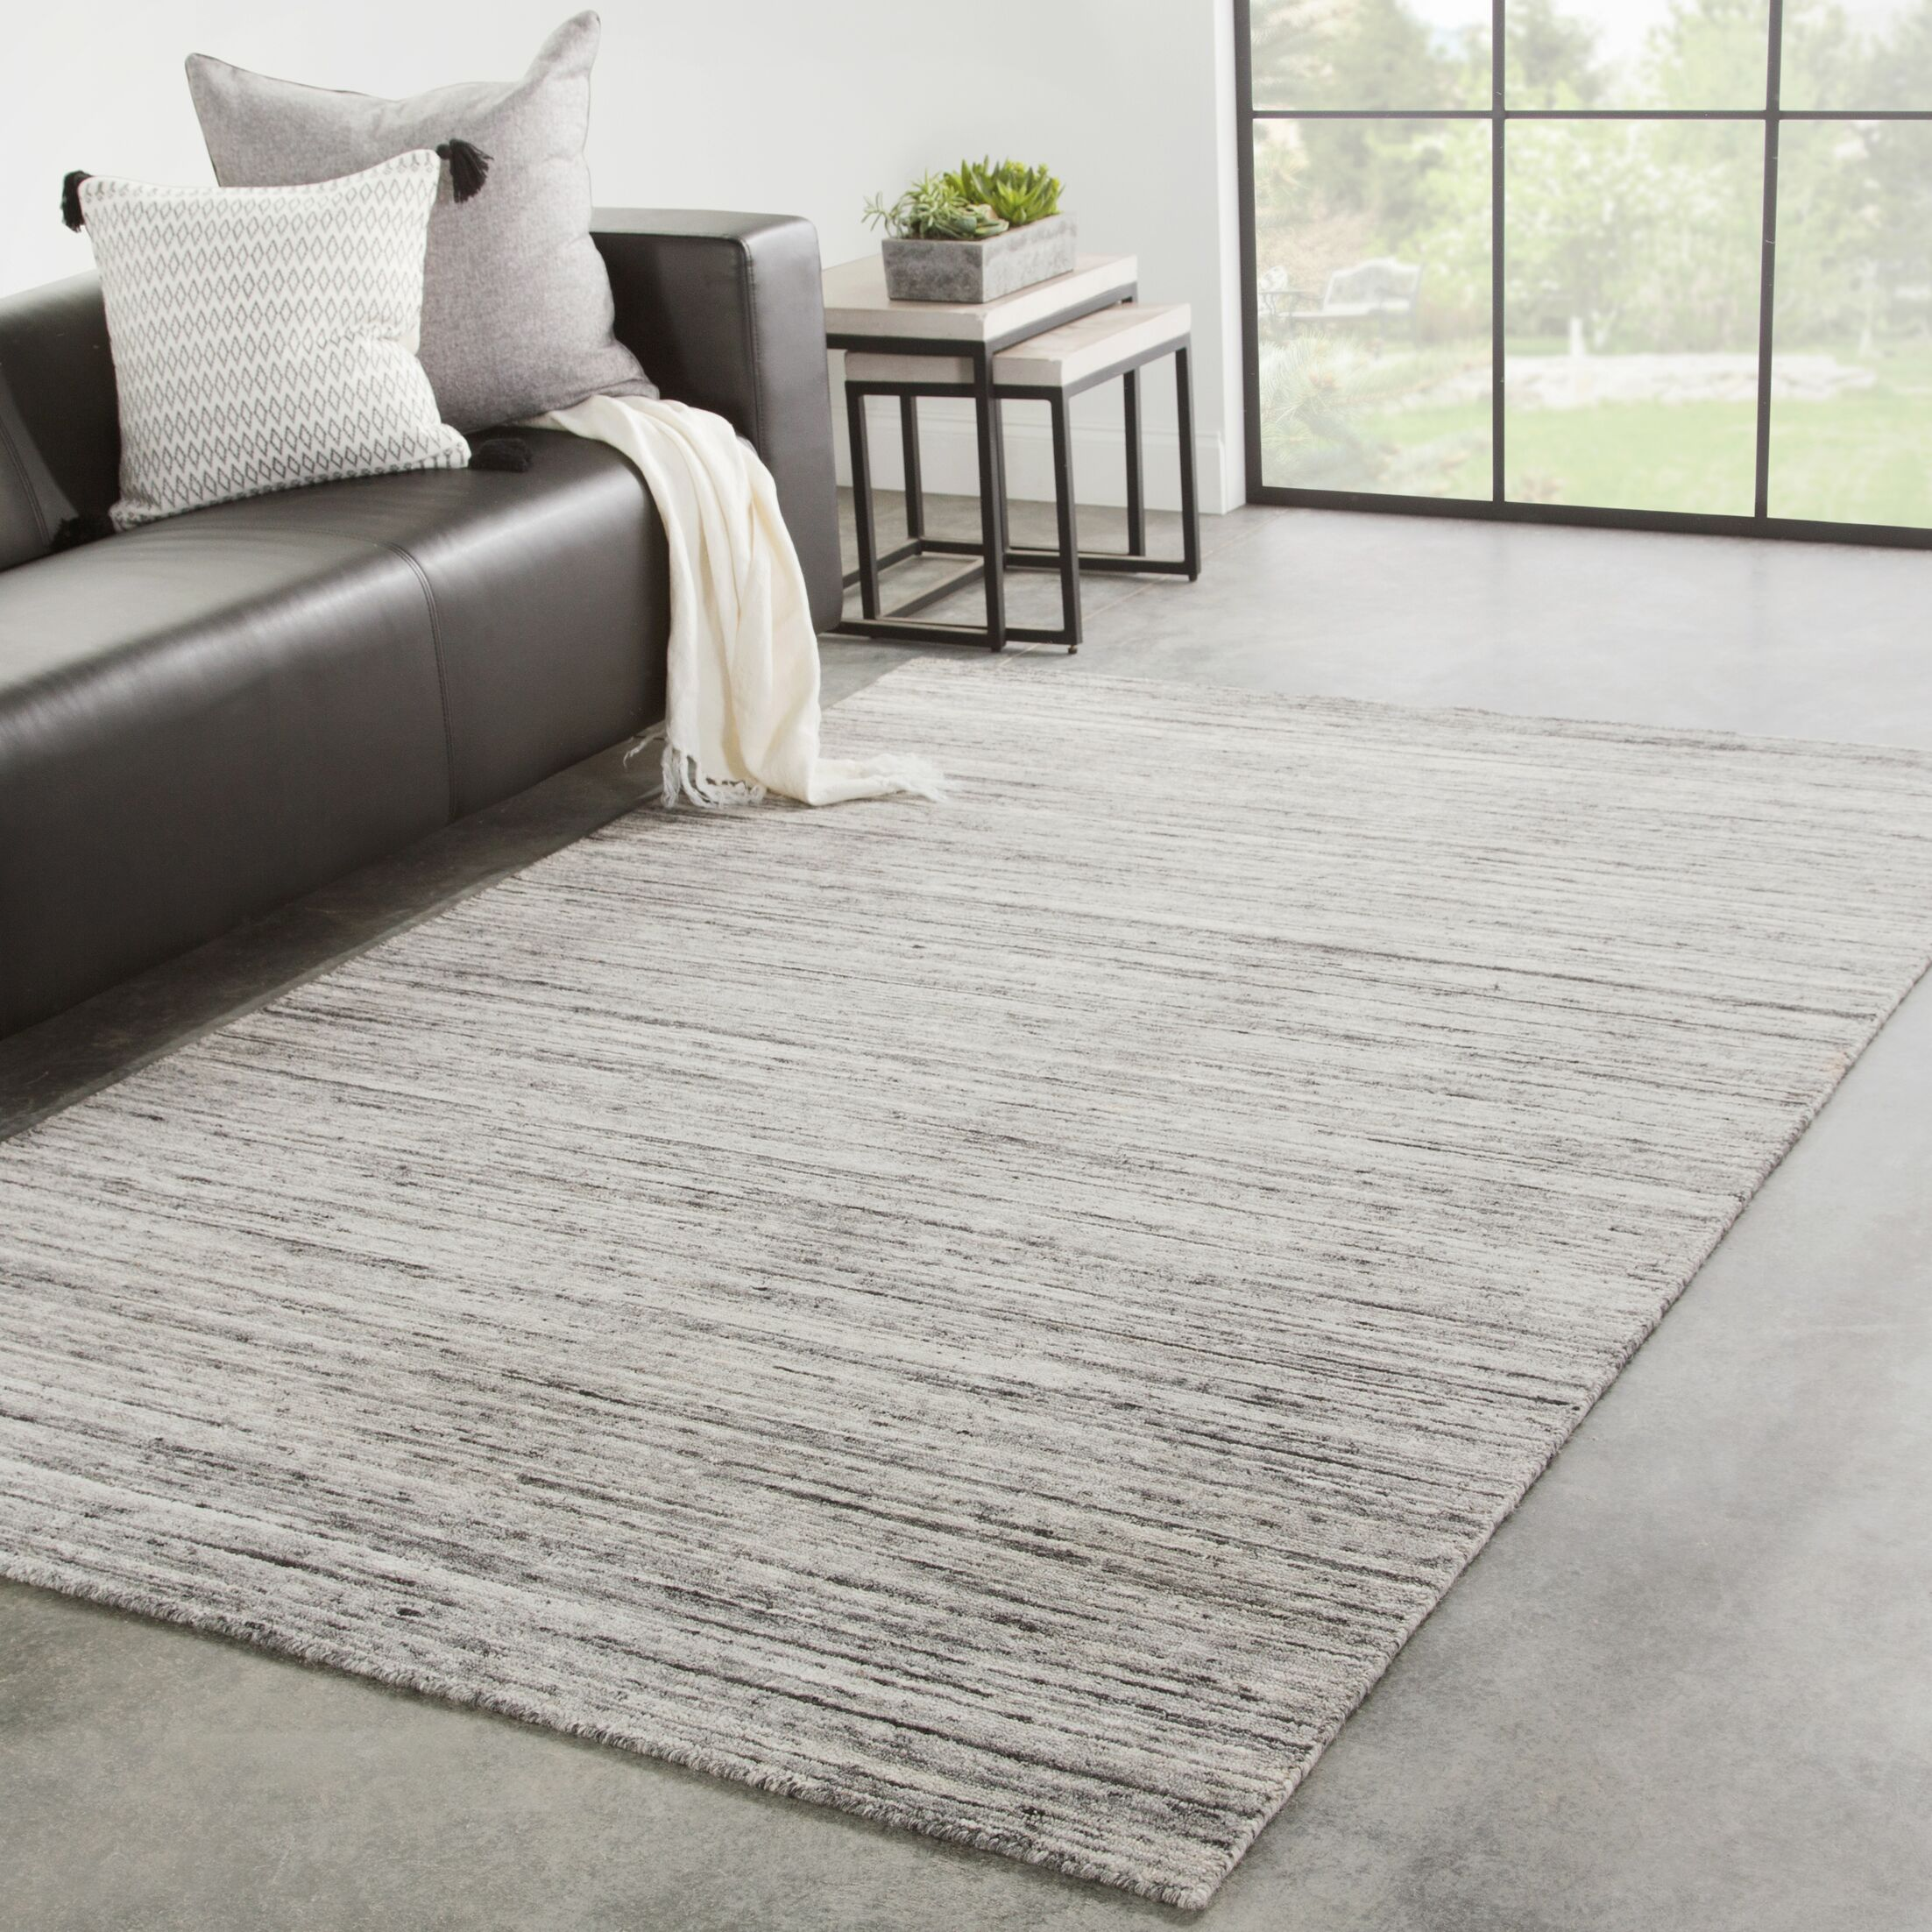 Padgett Hand-Loomed Wool Gray/Beige Area Rug Rug Size: Rectangle 8'6